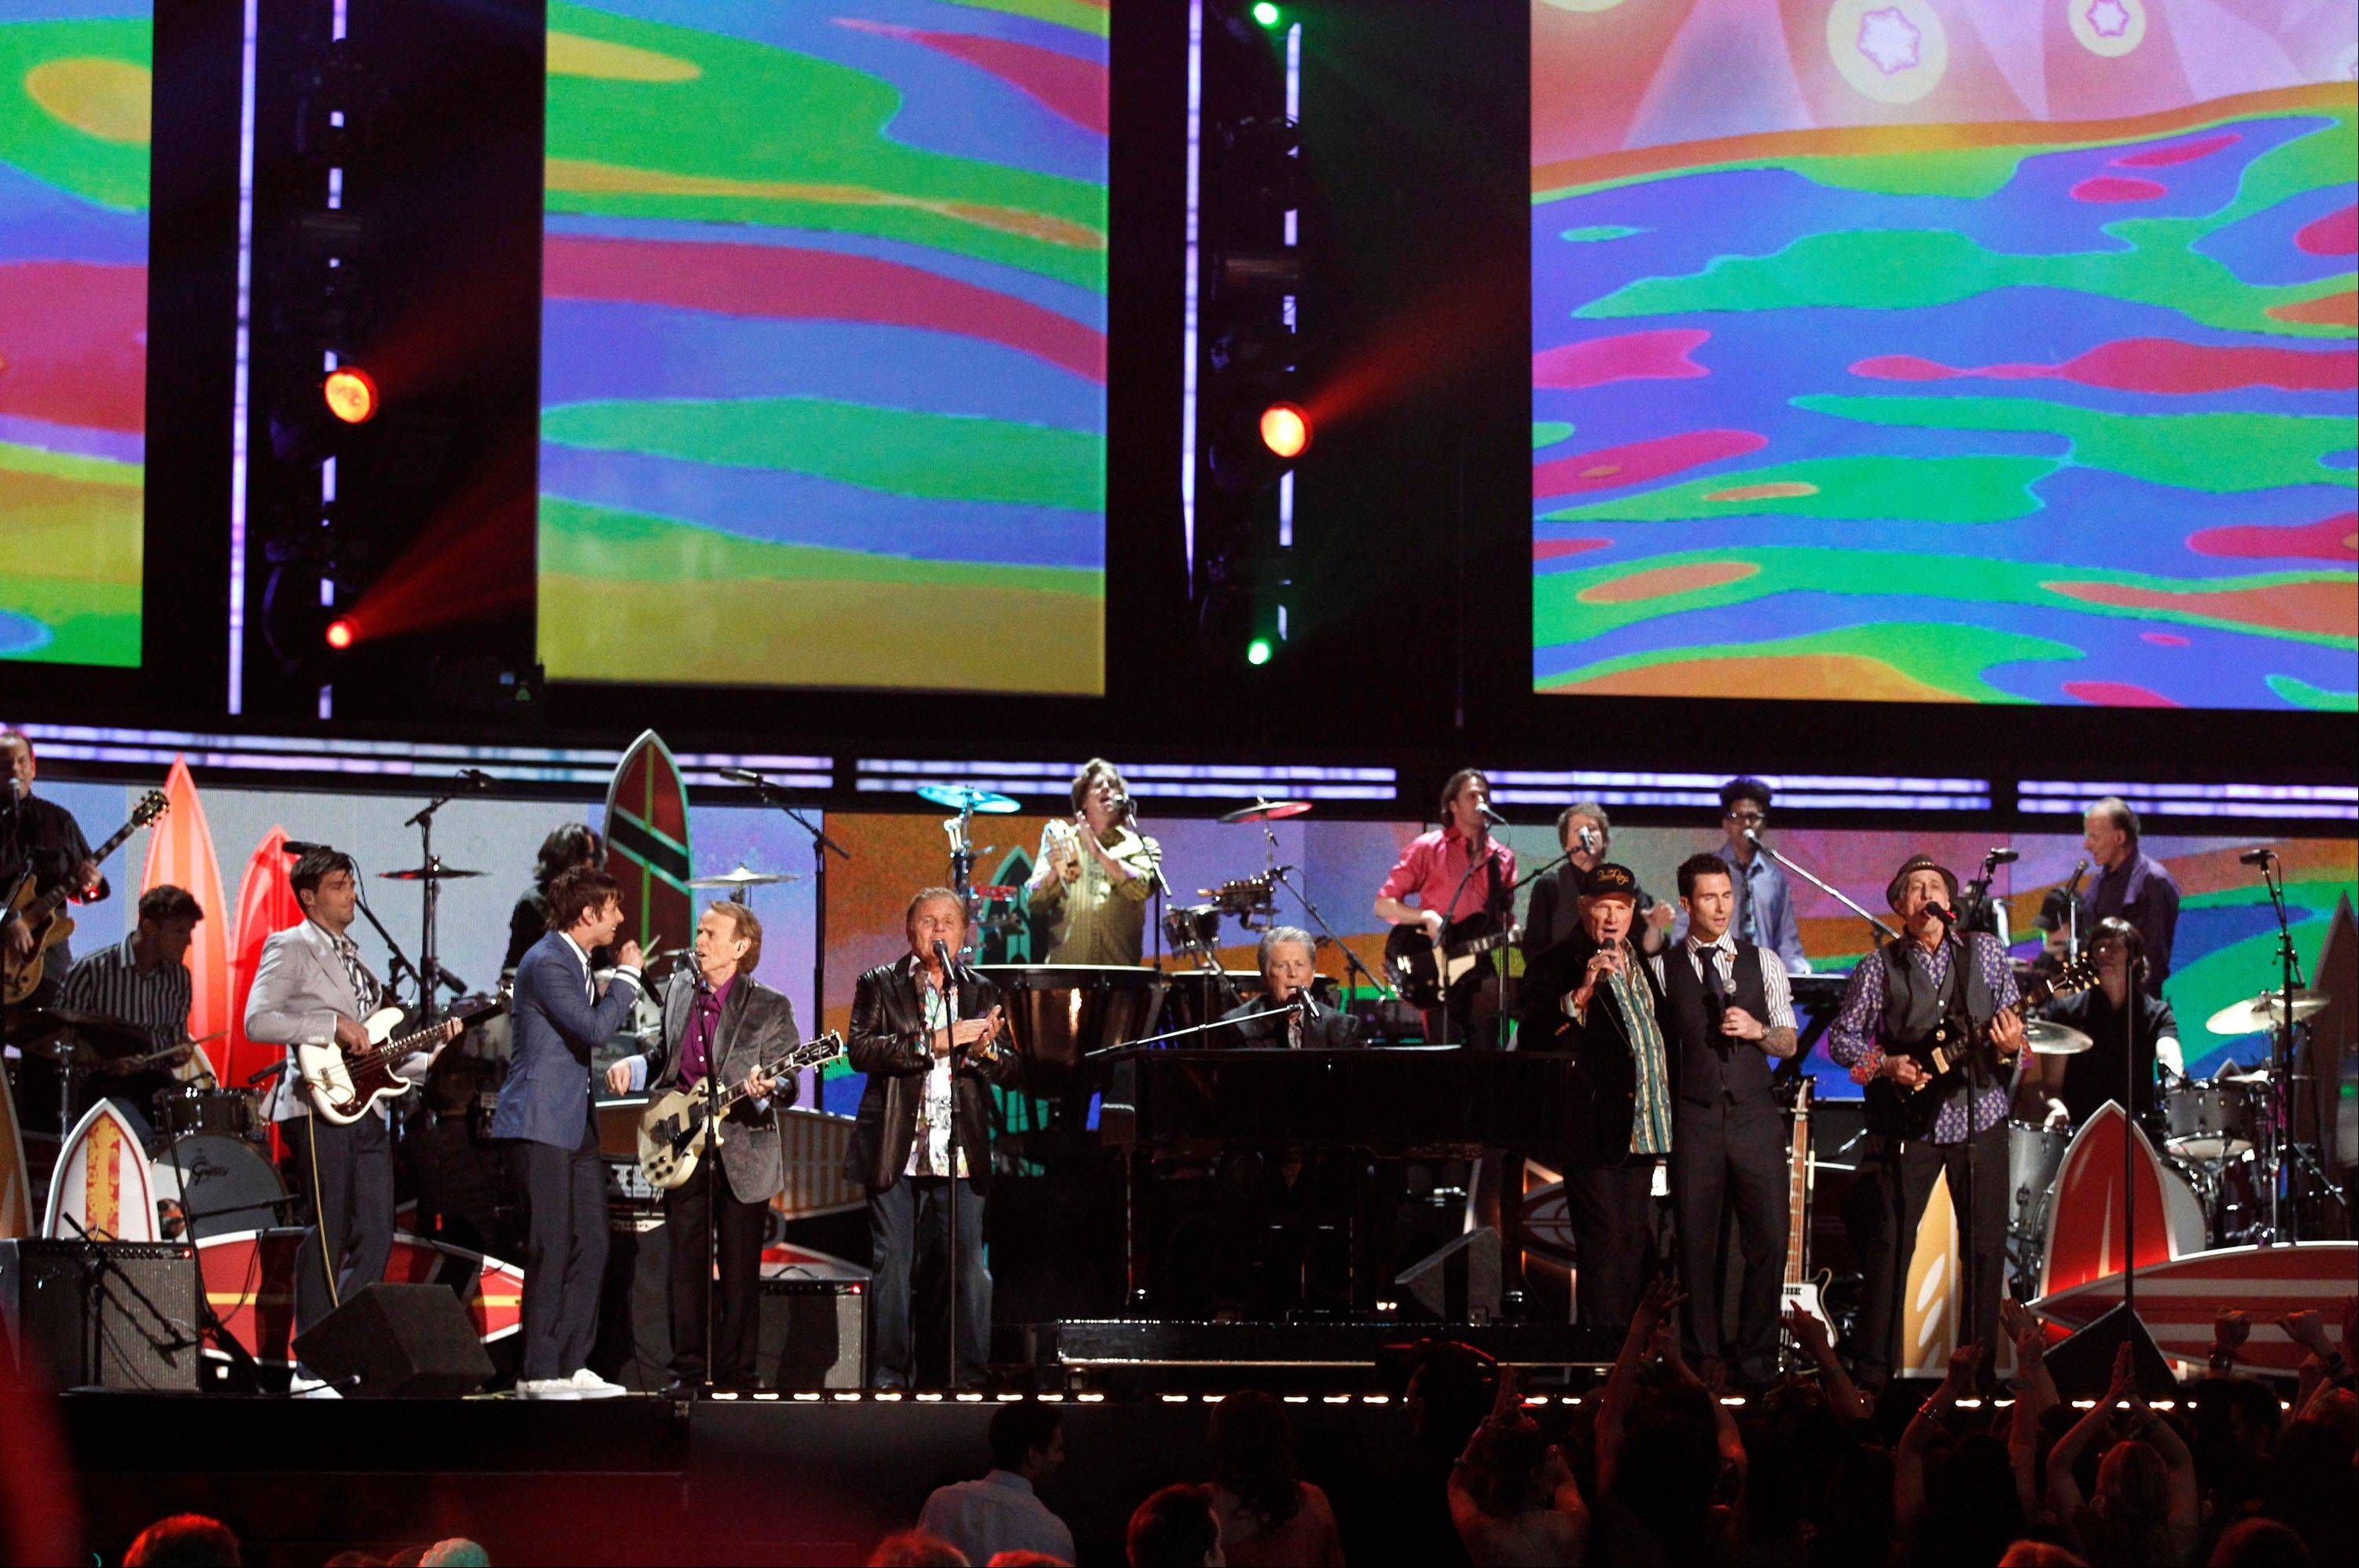 The bands Beach Boys, Maroon 5, and Foster the People perform Sunday during the 54th annual Grammy Awards in Los Angeles.